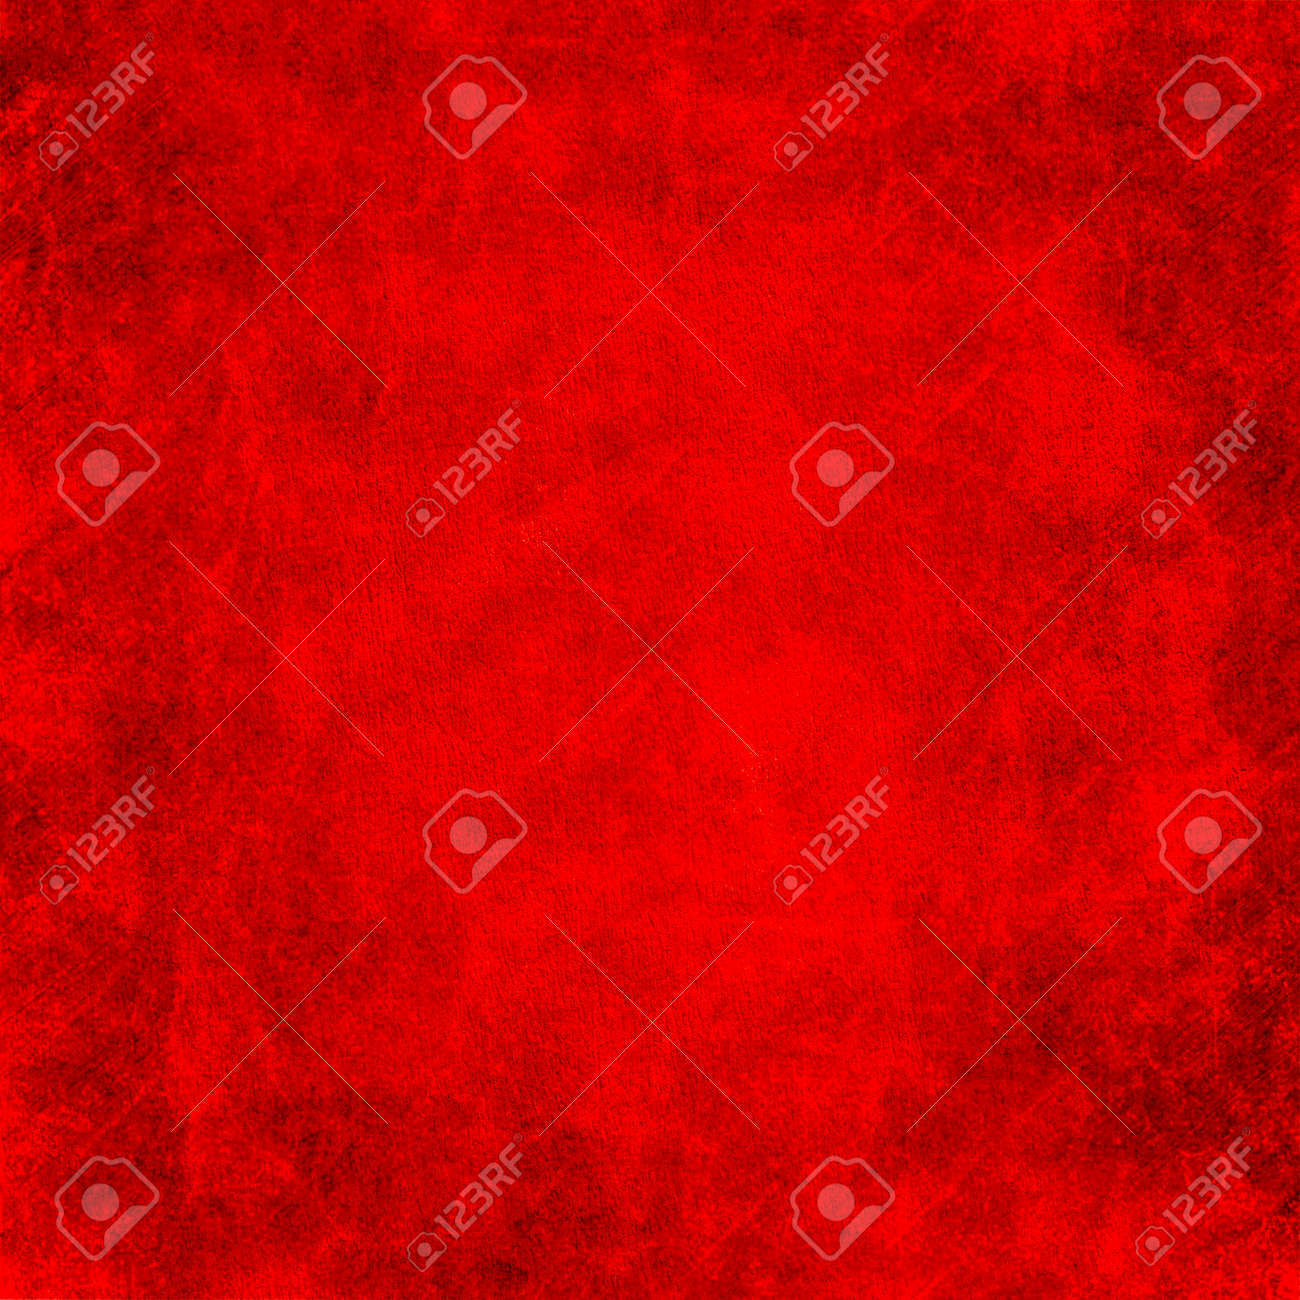 red canvas marble background texture vintage - 140343957